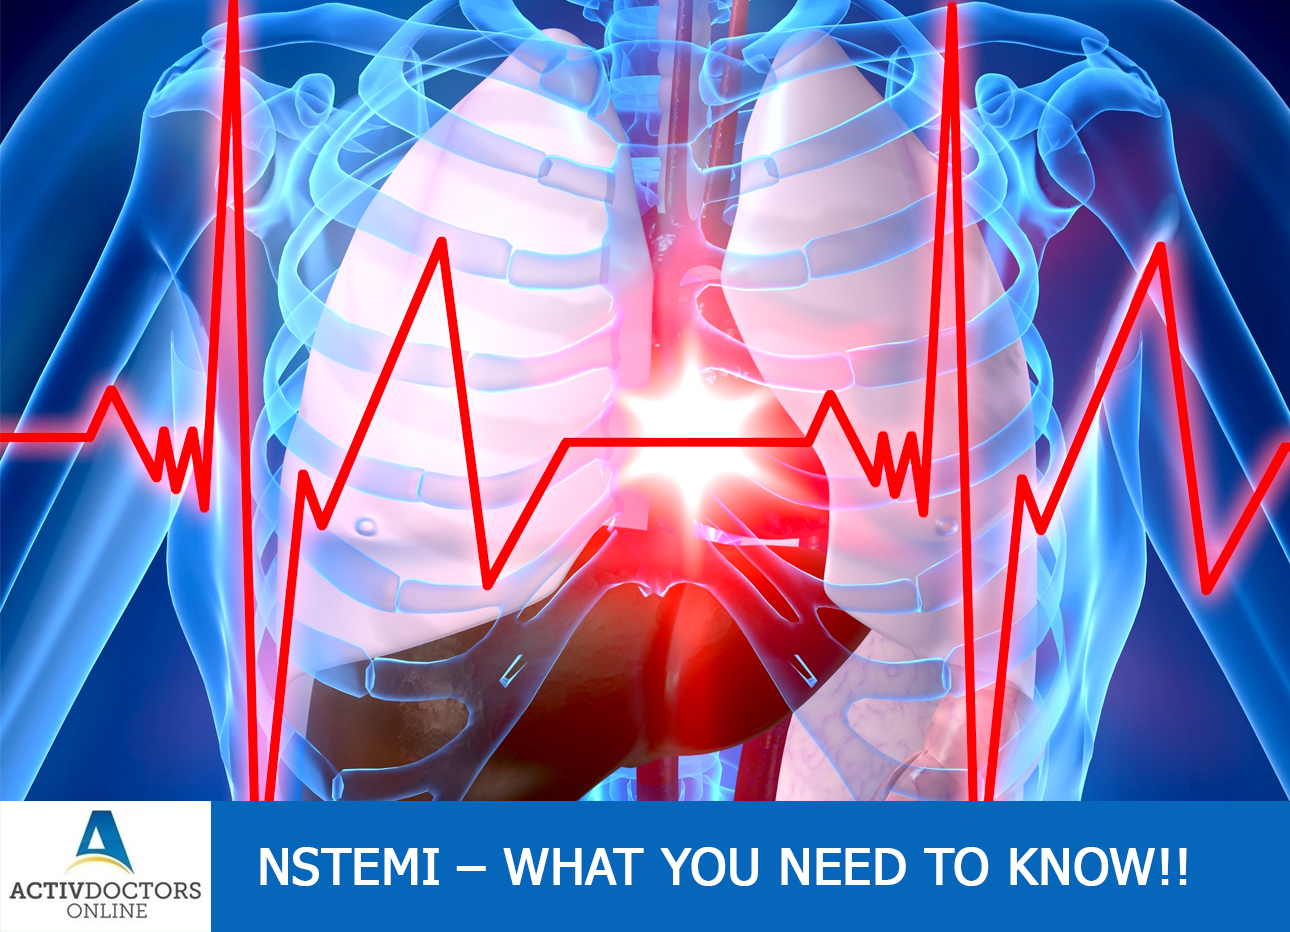 NSTEMI – What You Need To Know!!